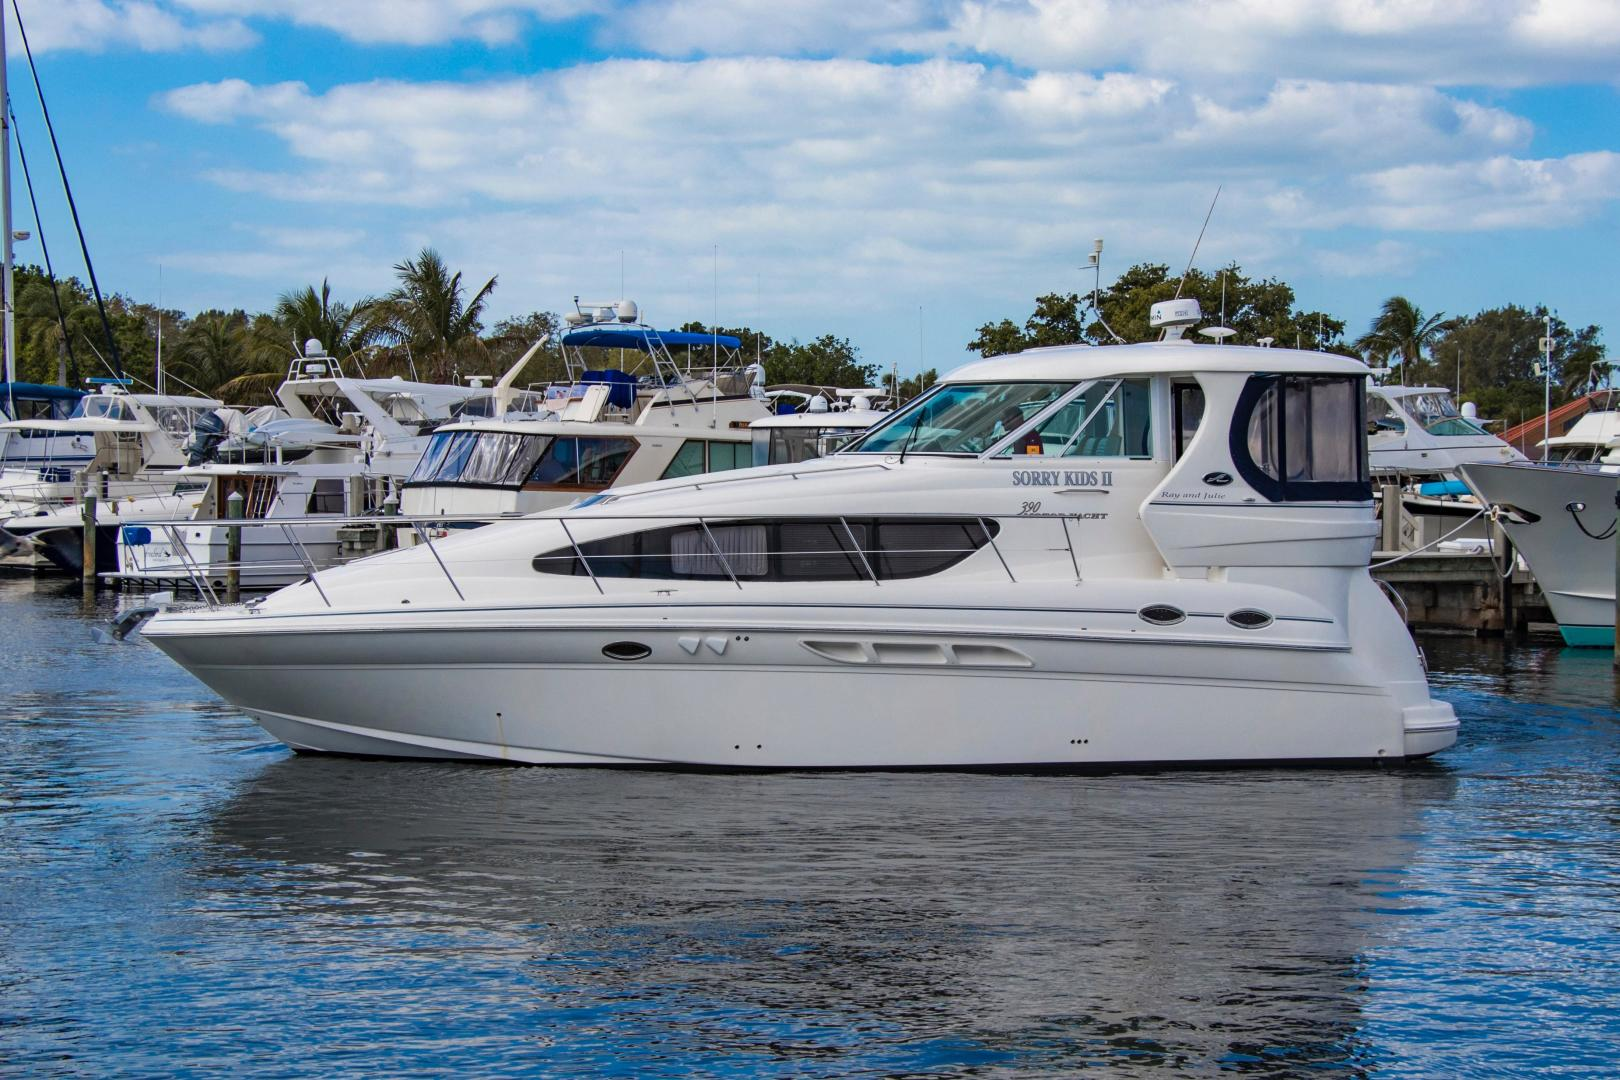 2005 Sea Ray 39' 39 Motor-yacht